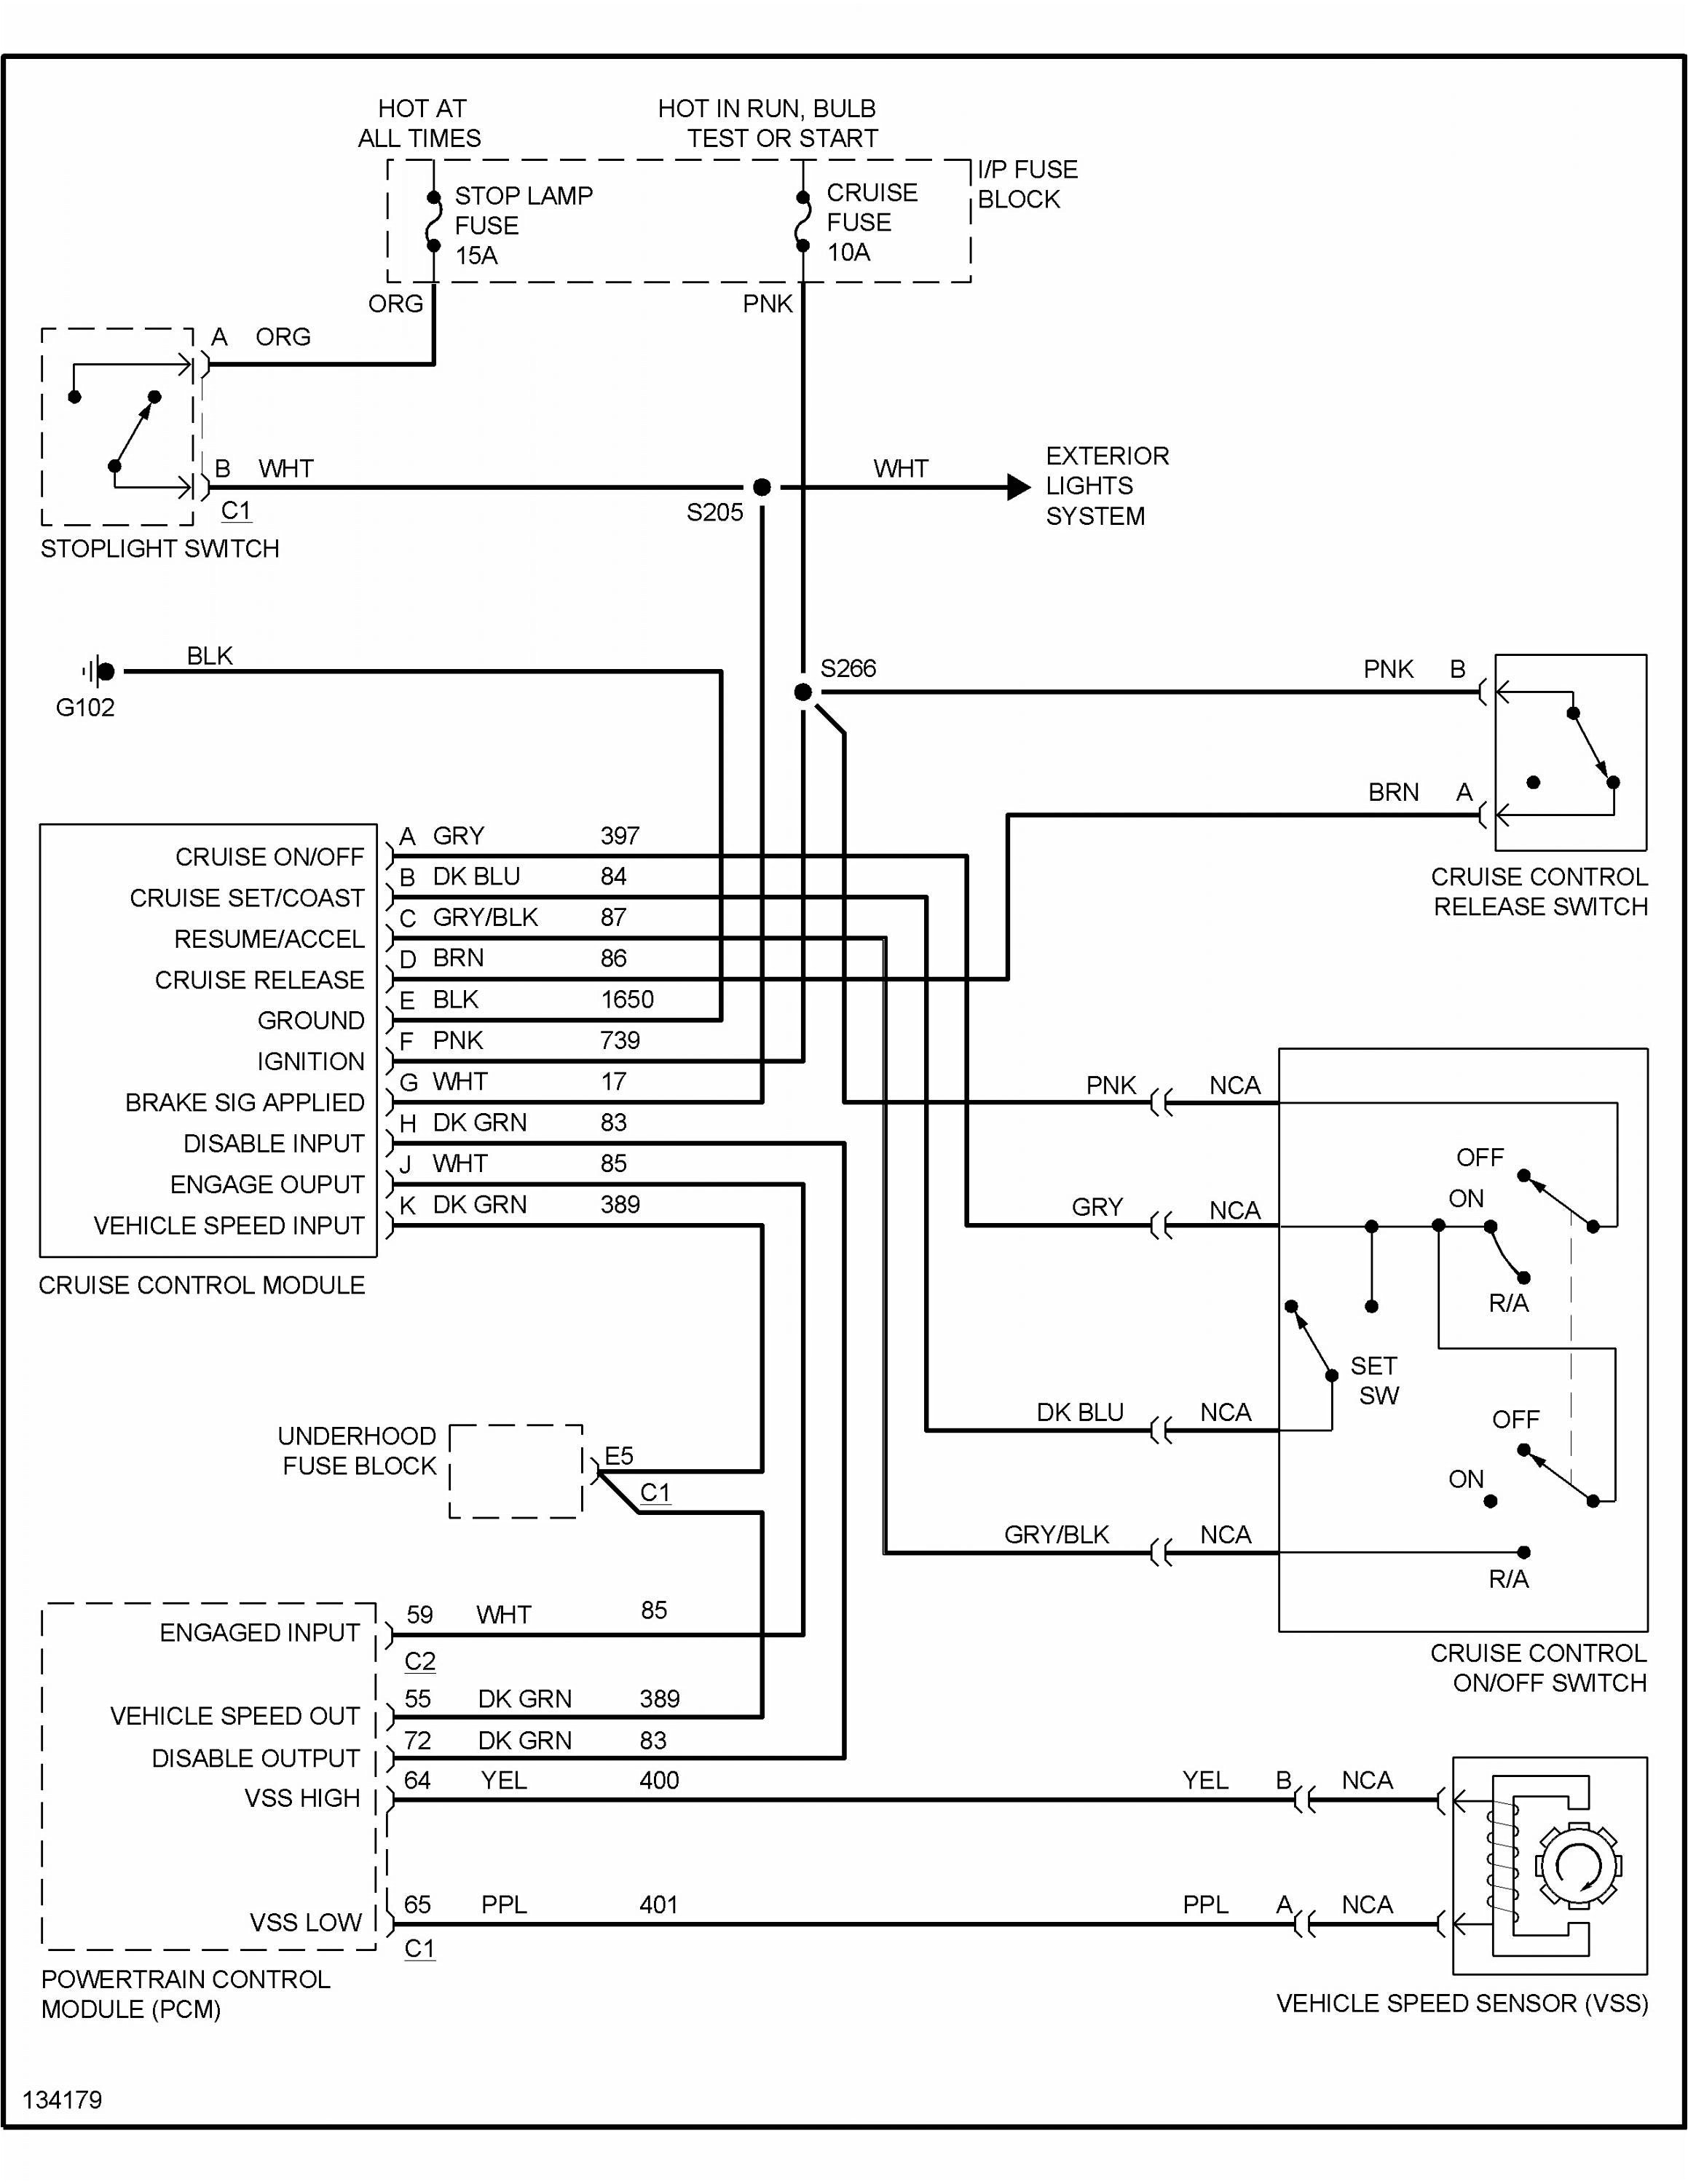 sony m 610 wiring harness diagram wiring diagram splitsony m 610 wiring harness diagram wiring diagram